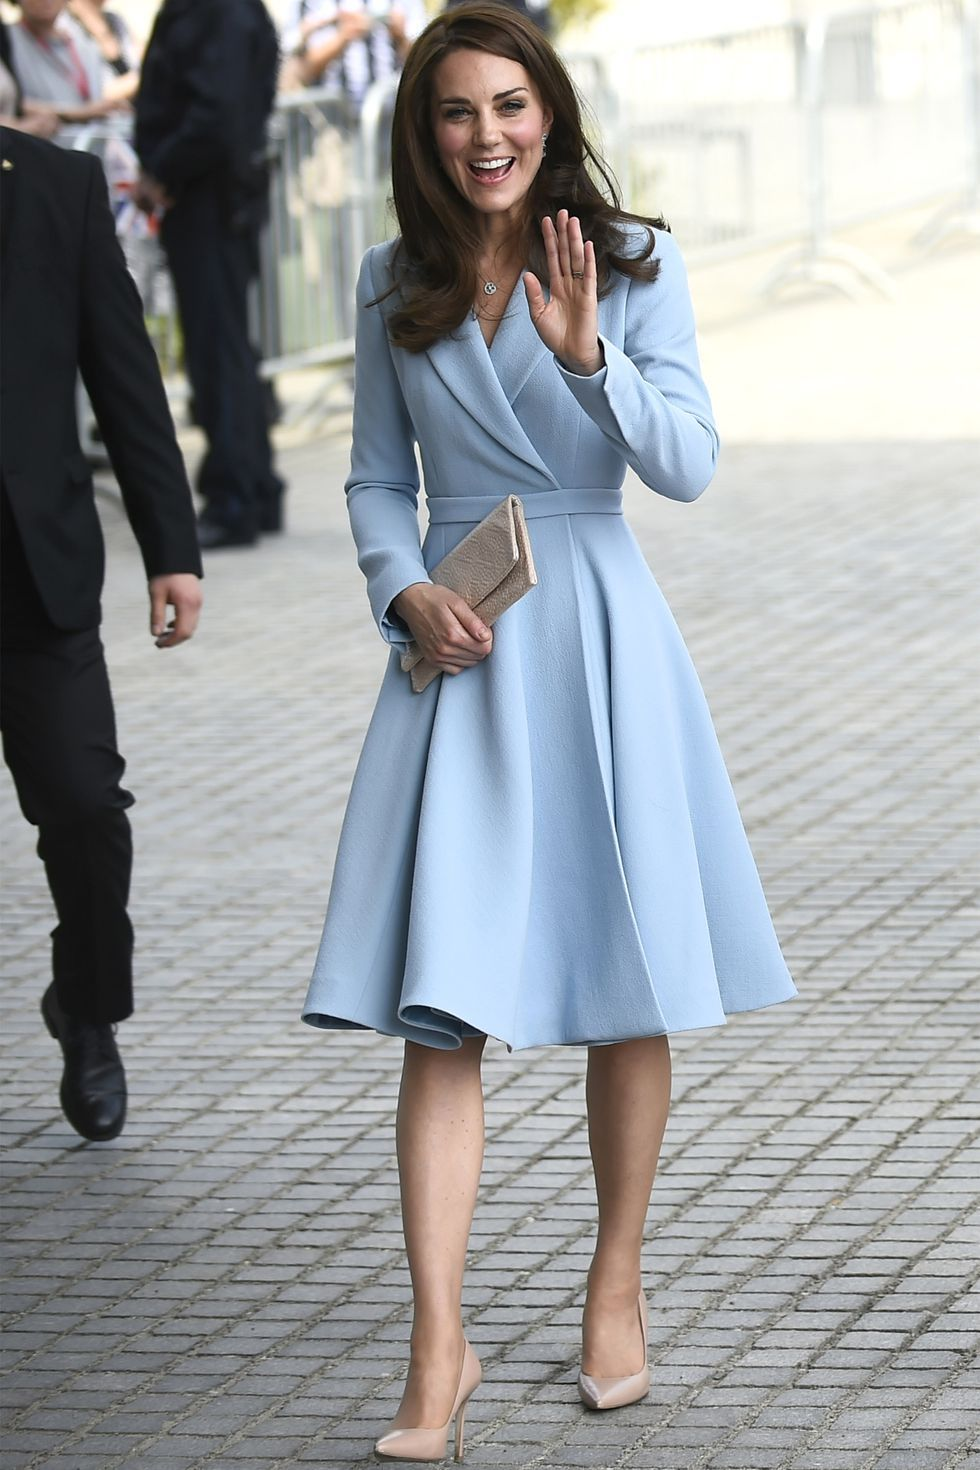 Are These Kate Middleton's Most Fashionable Looks? #styleinspiration